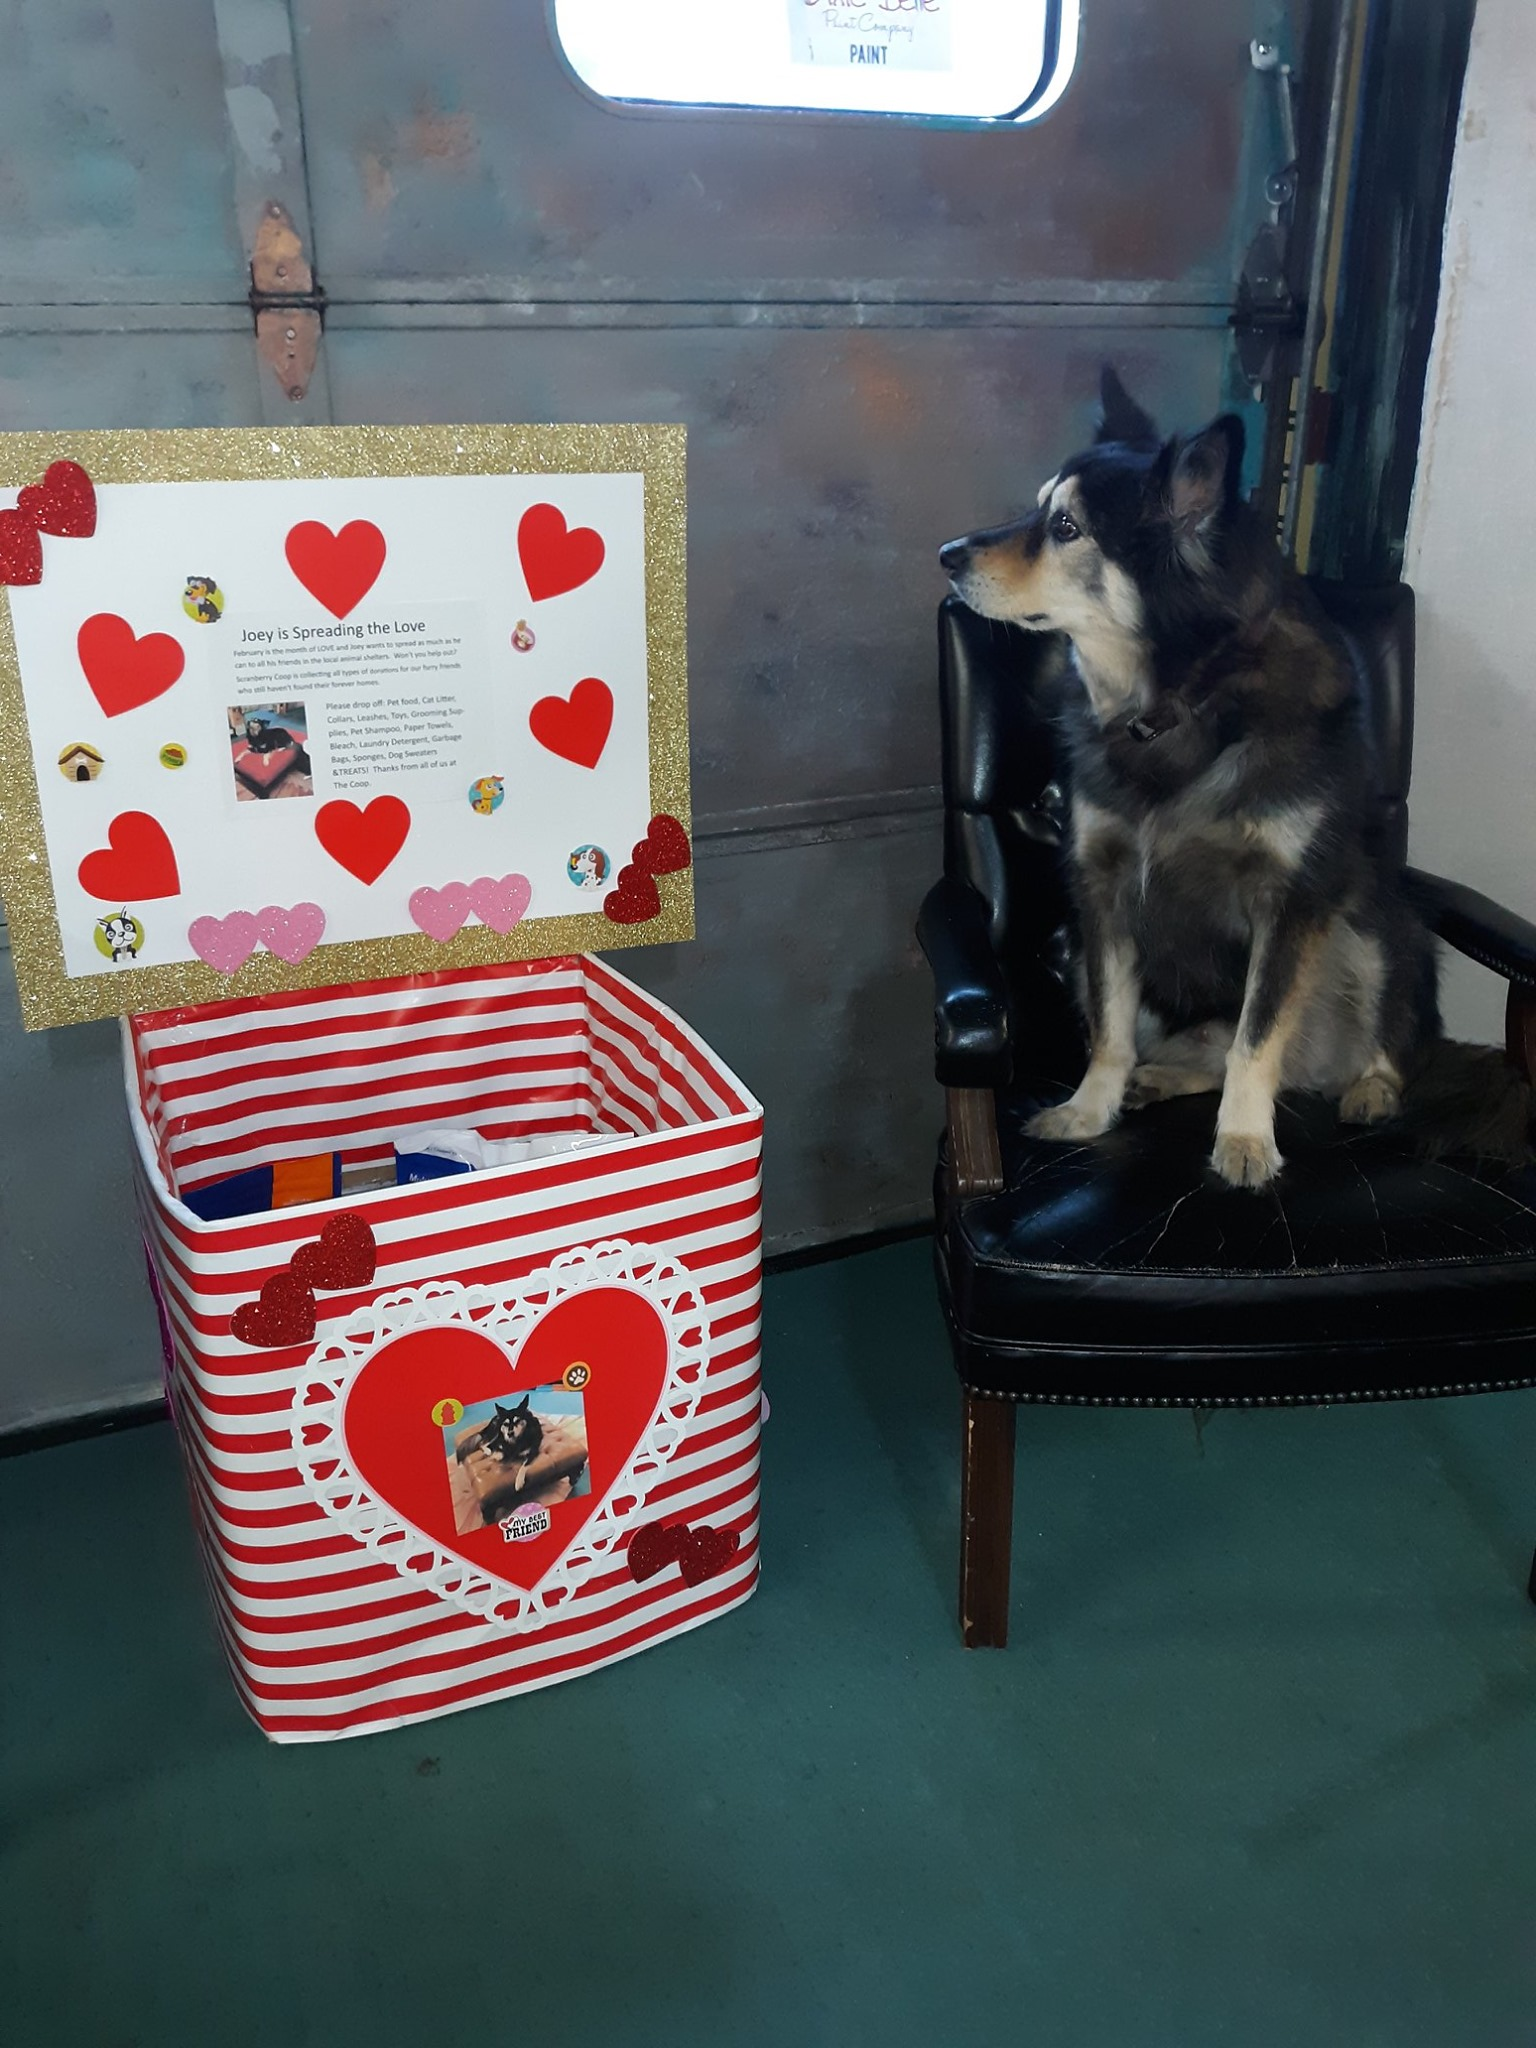 Joey is Spreading the Love! - Scranberry Coop - Vintage Store - Antiques, Collectibles, & More